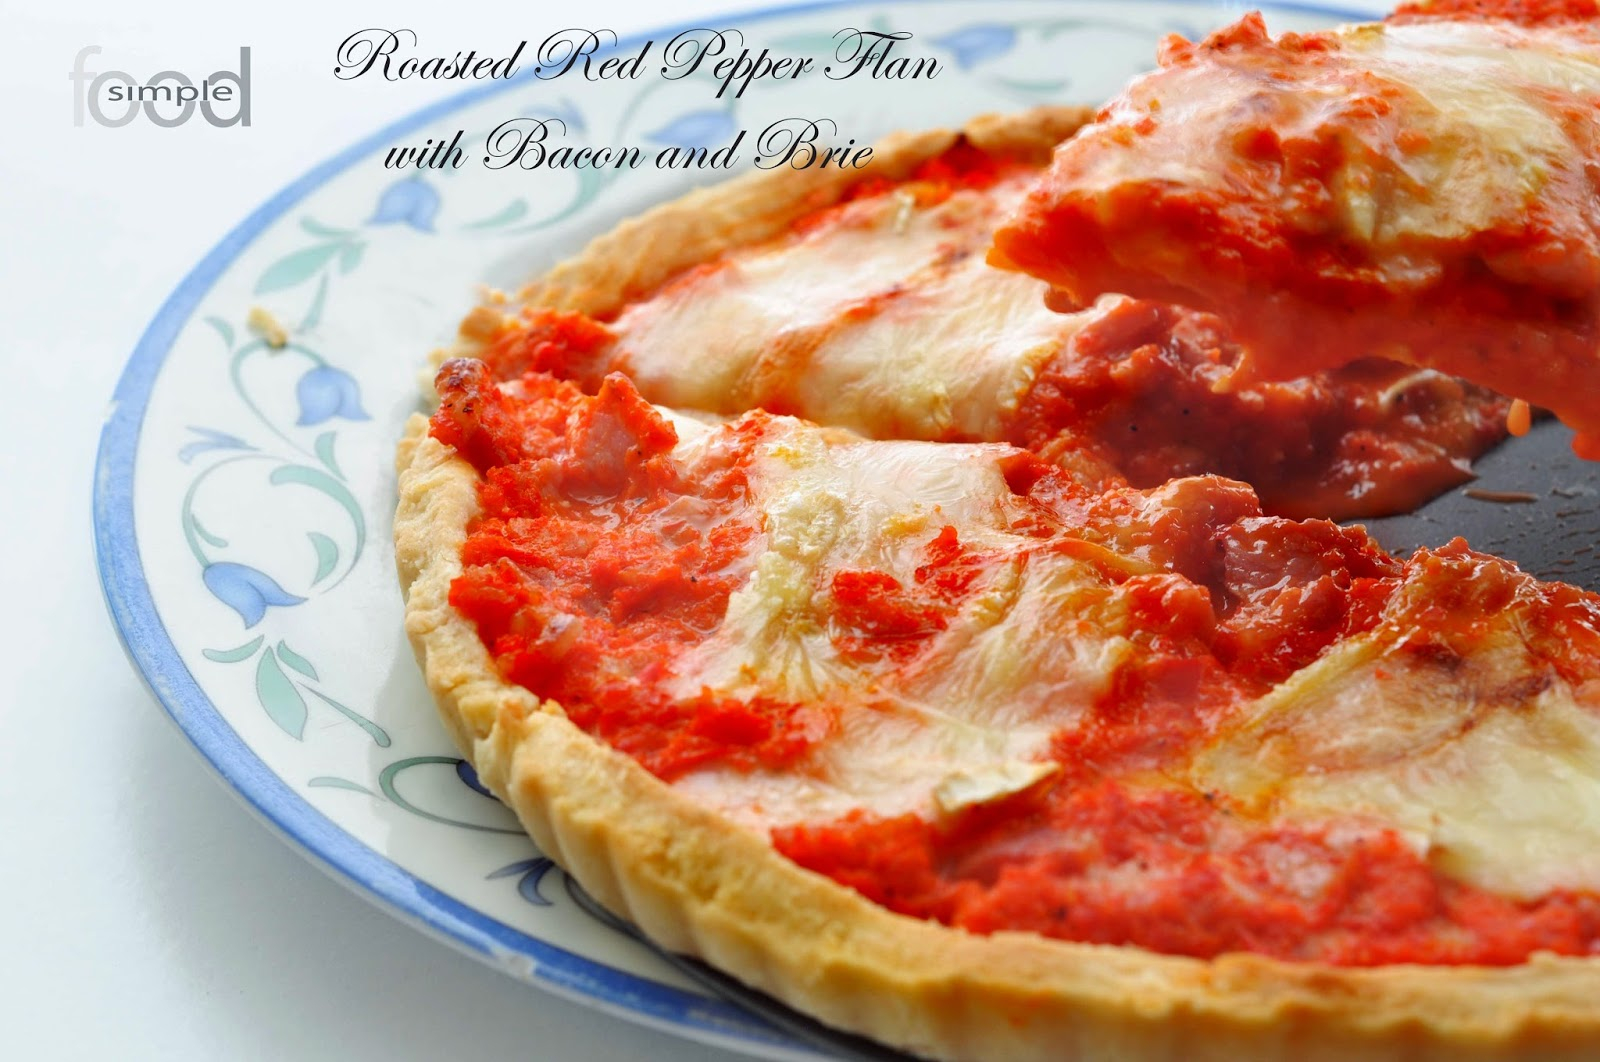 Roasted Red Pepper Flan with Bacon and Brie ~ Simple Food